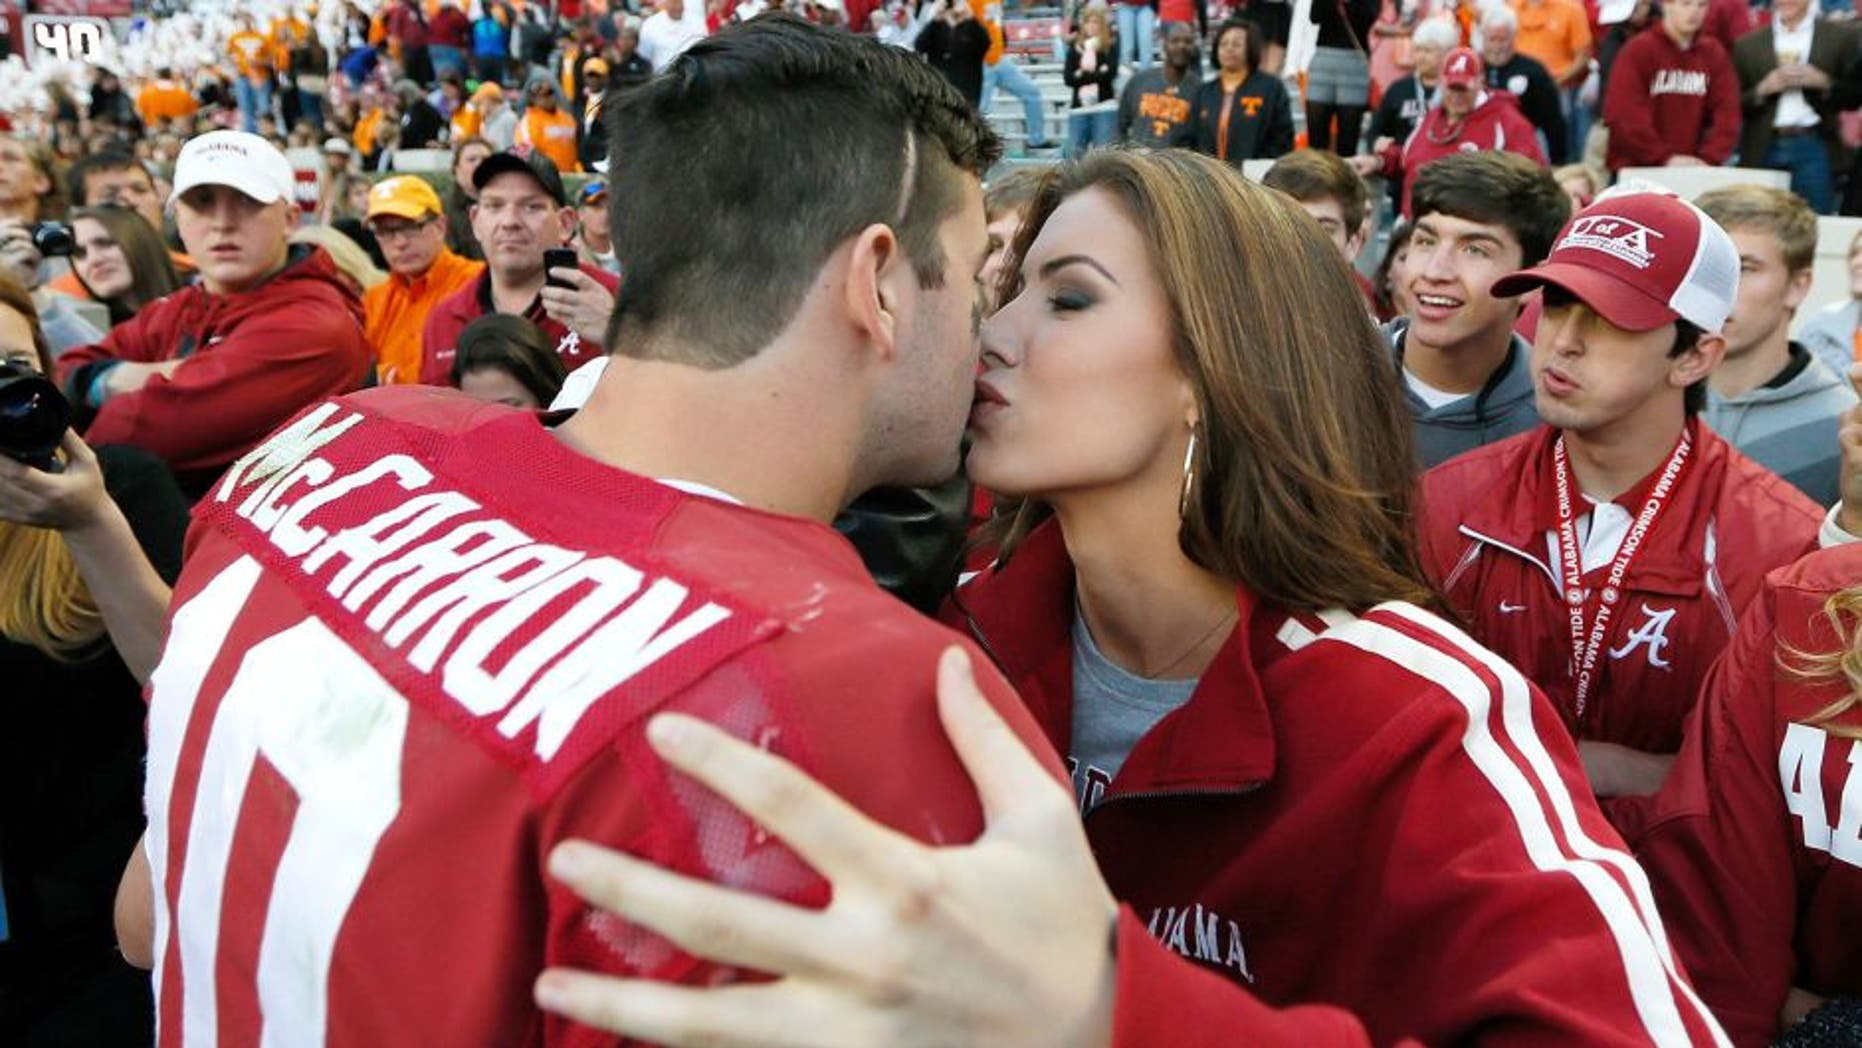 TUSCALOOSA, AL - OCTOBER 26: AJ McCarron #10 of the Alabama Crimson Tide kisses girlfriend Katherine Webb after their 45-10 win over the Tennessee Volunteers at Bryant-Denny Stadium on October 26, 2013 in Tuscaloosa, Alabama. (Photo by Kevin C. Cox/Getty Images)